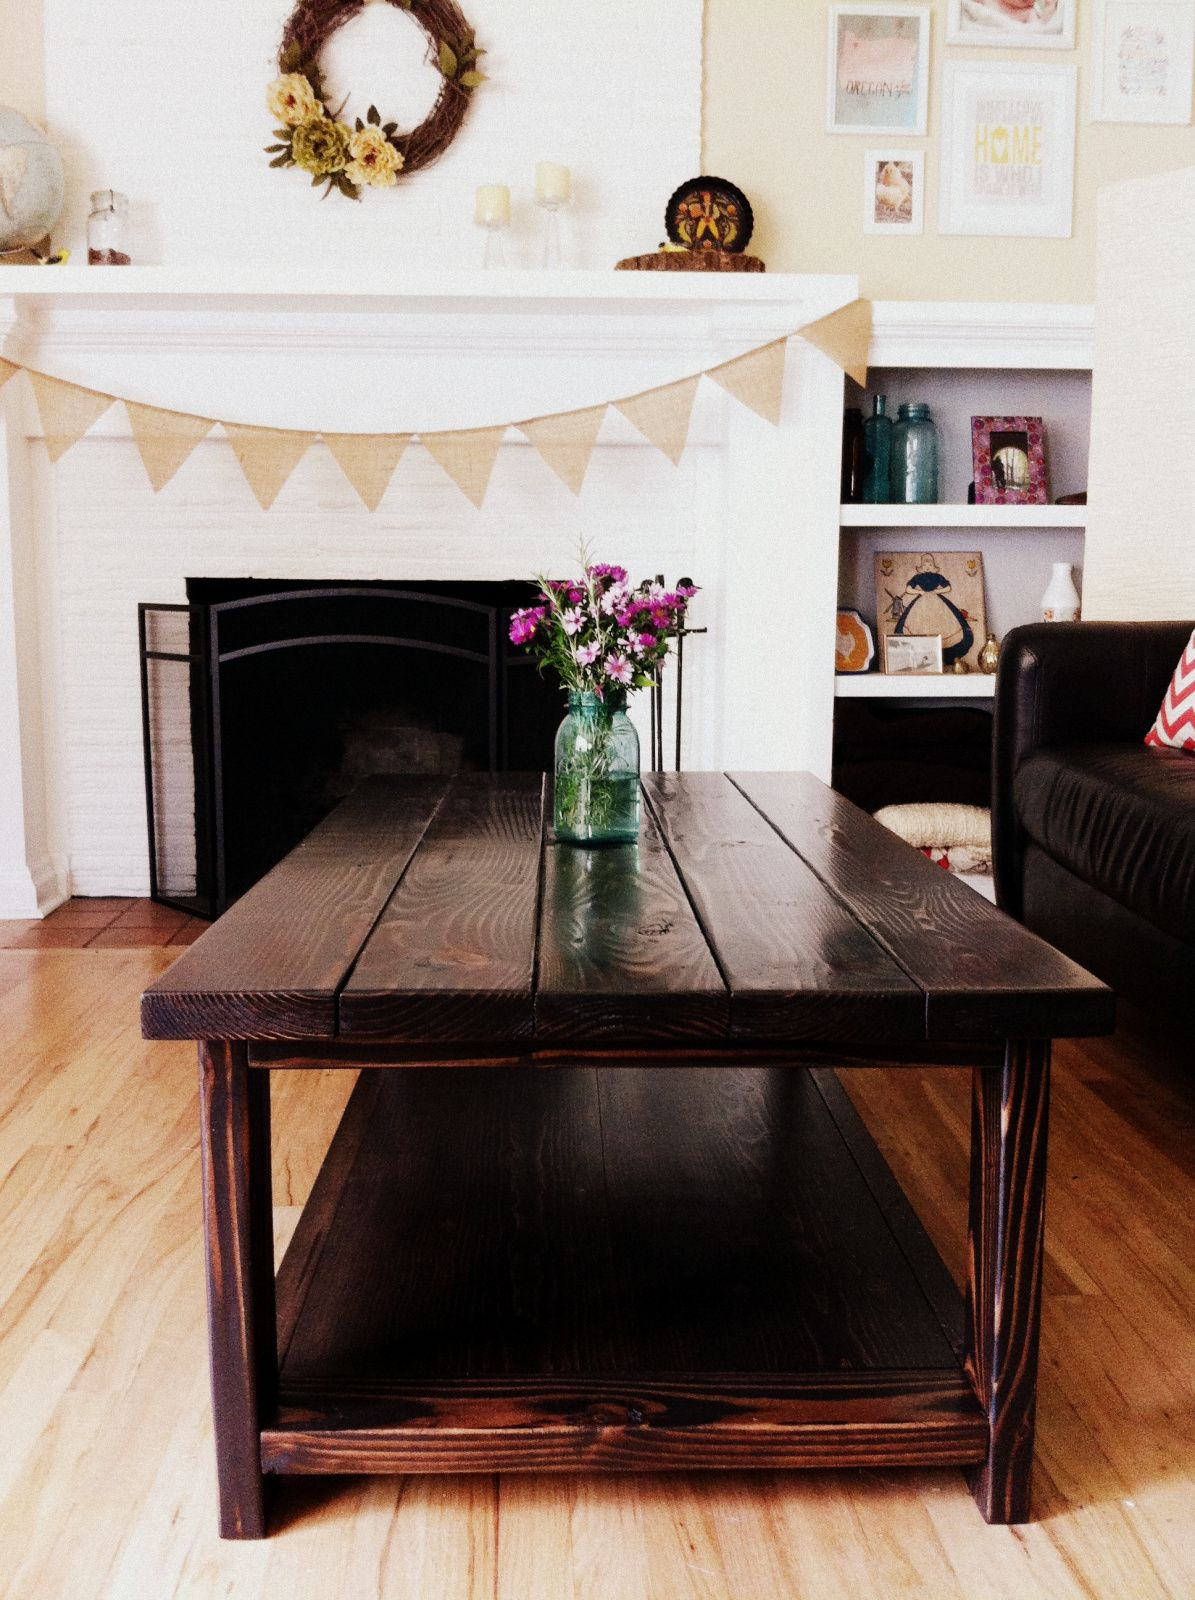 What Friends Are For Diy Farmhouse Coffee Table Home Decor Coffee Table